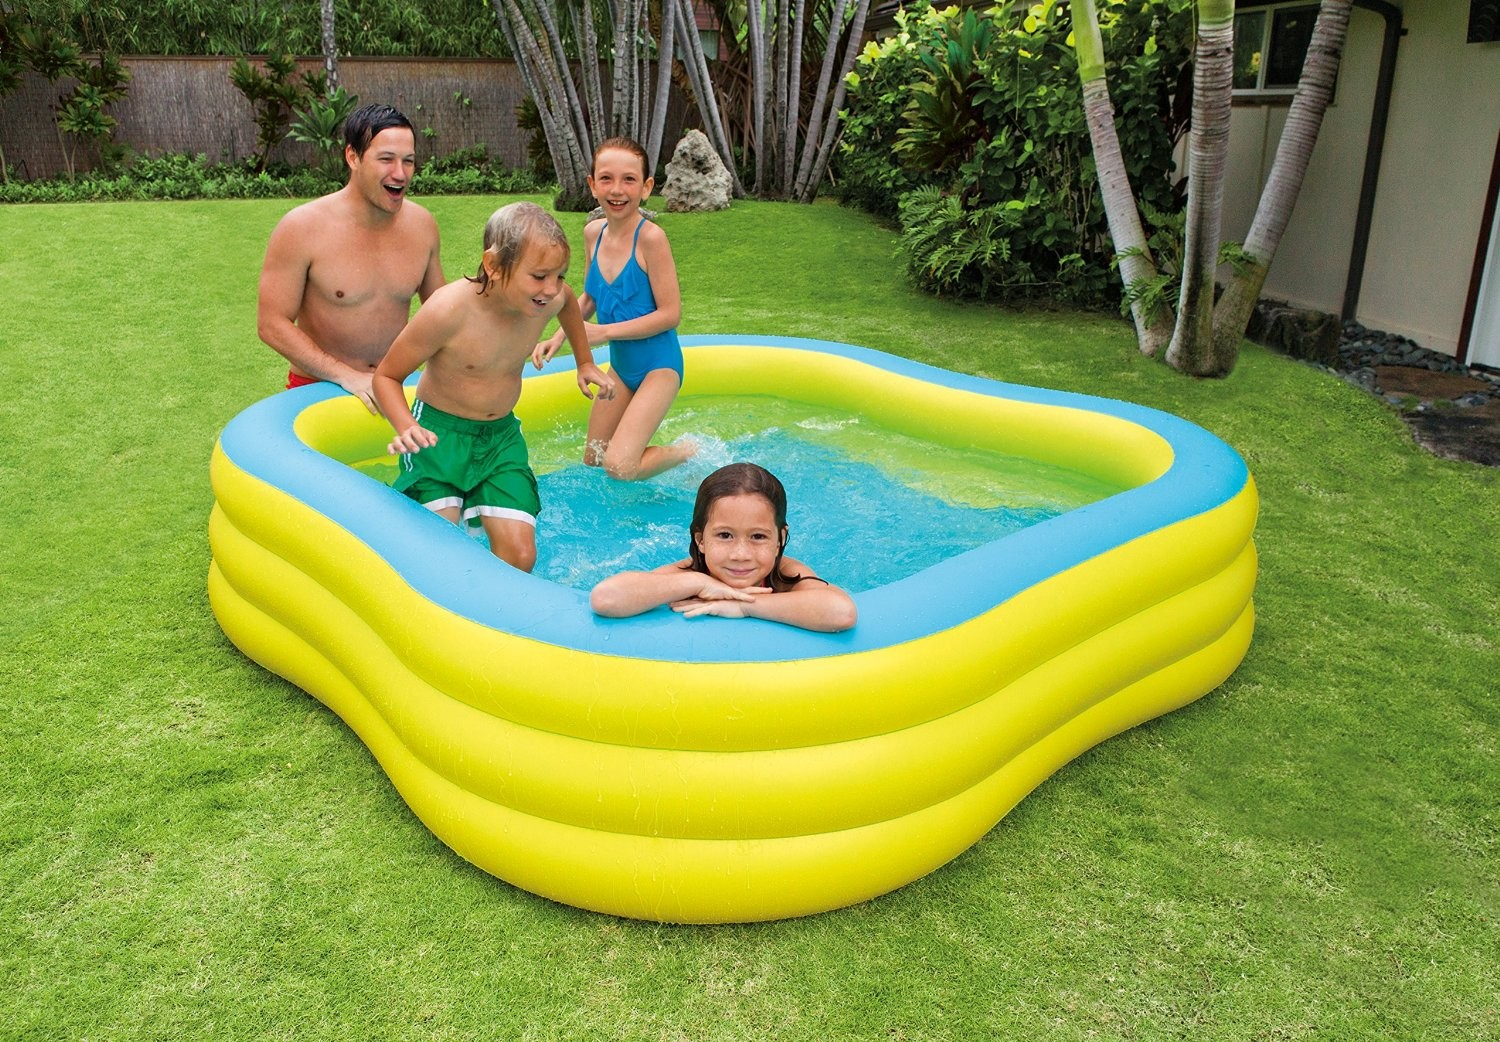 Piscina Intex 6000 Litros Medidas Piscina Familiar Hinchable Forma Cuadrada 229 X 229 X 56